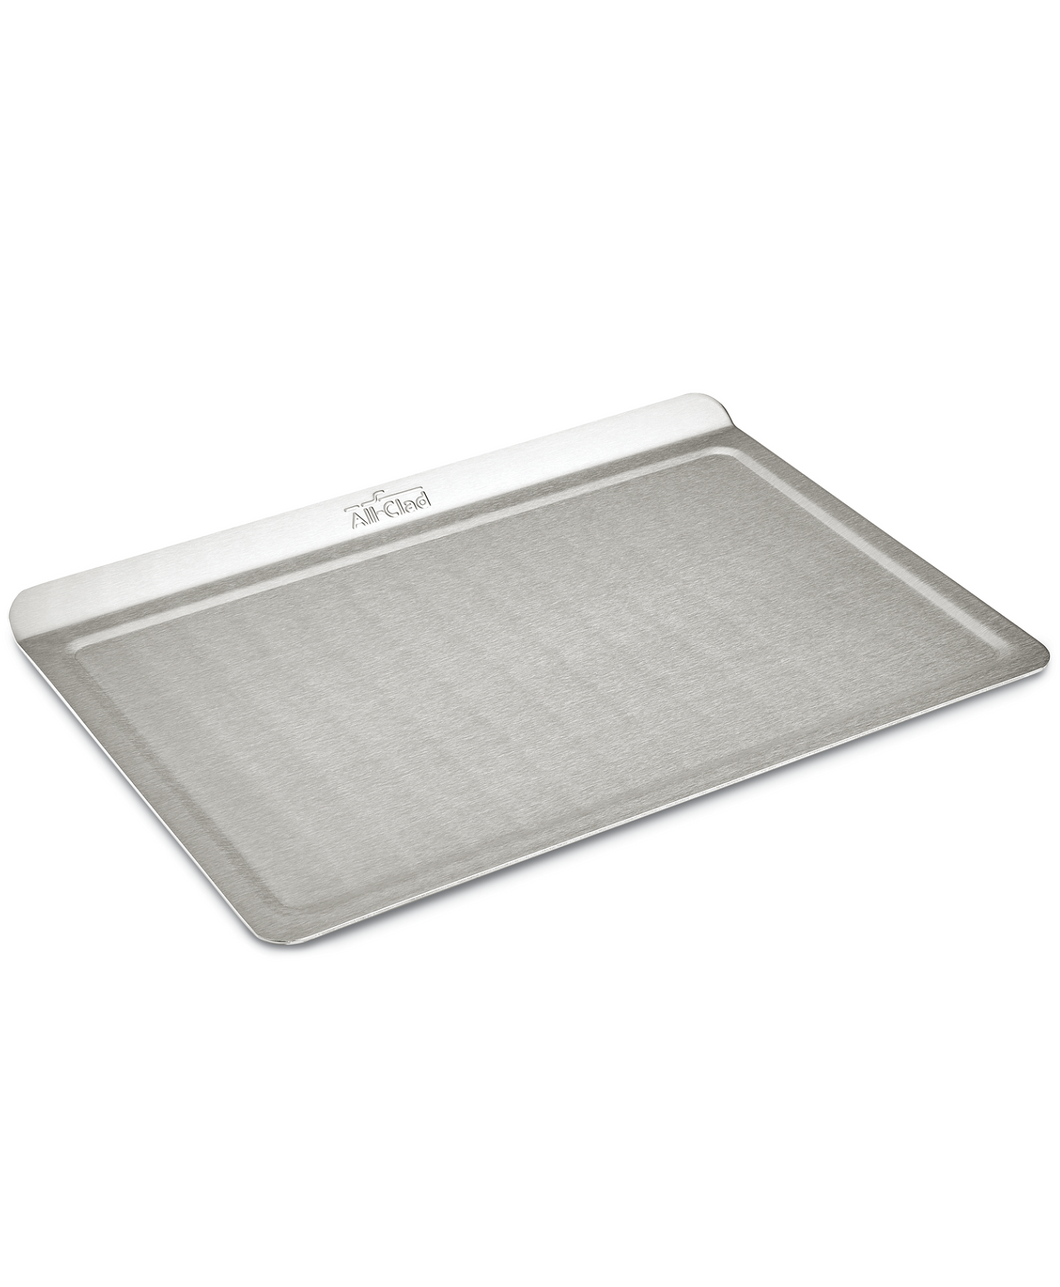 All-Clad D3 Stainless Ovenware 14